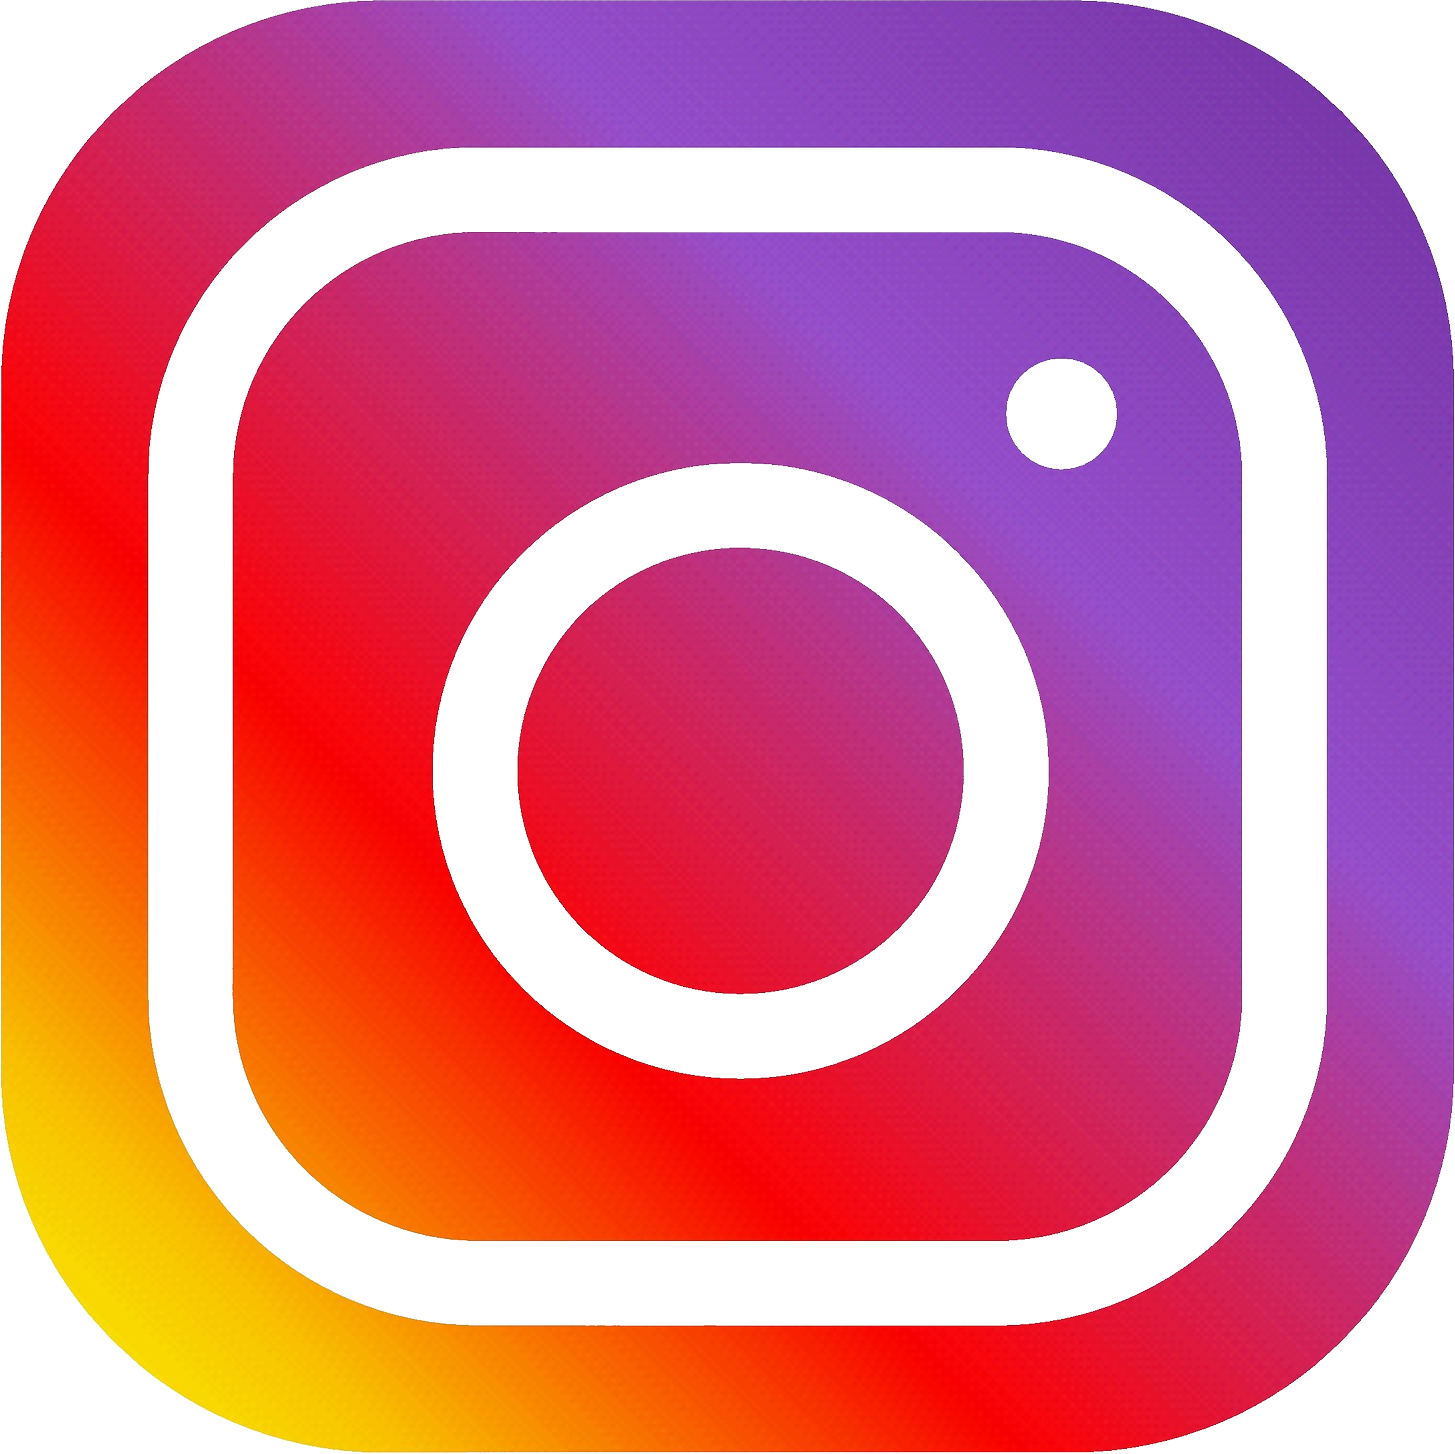 Intagram Button